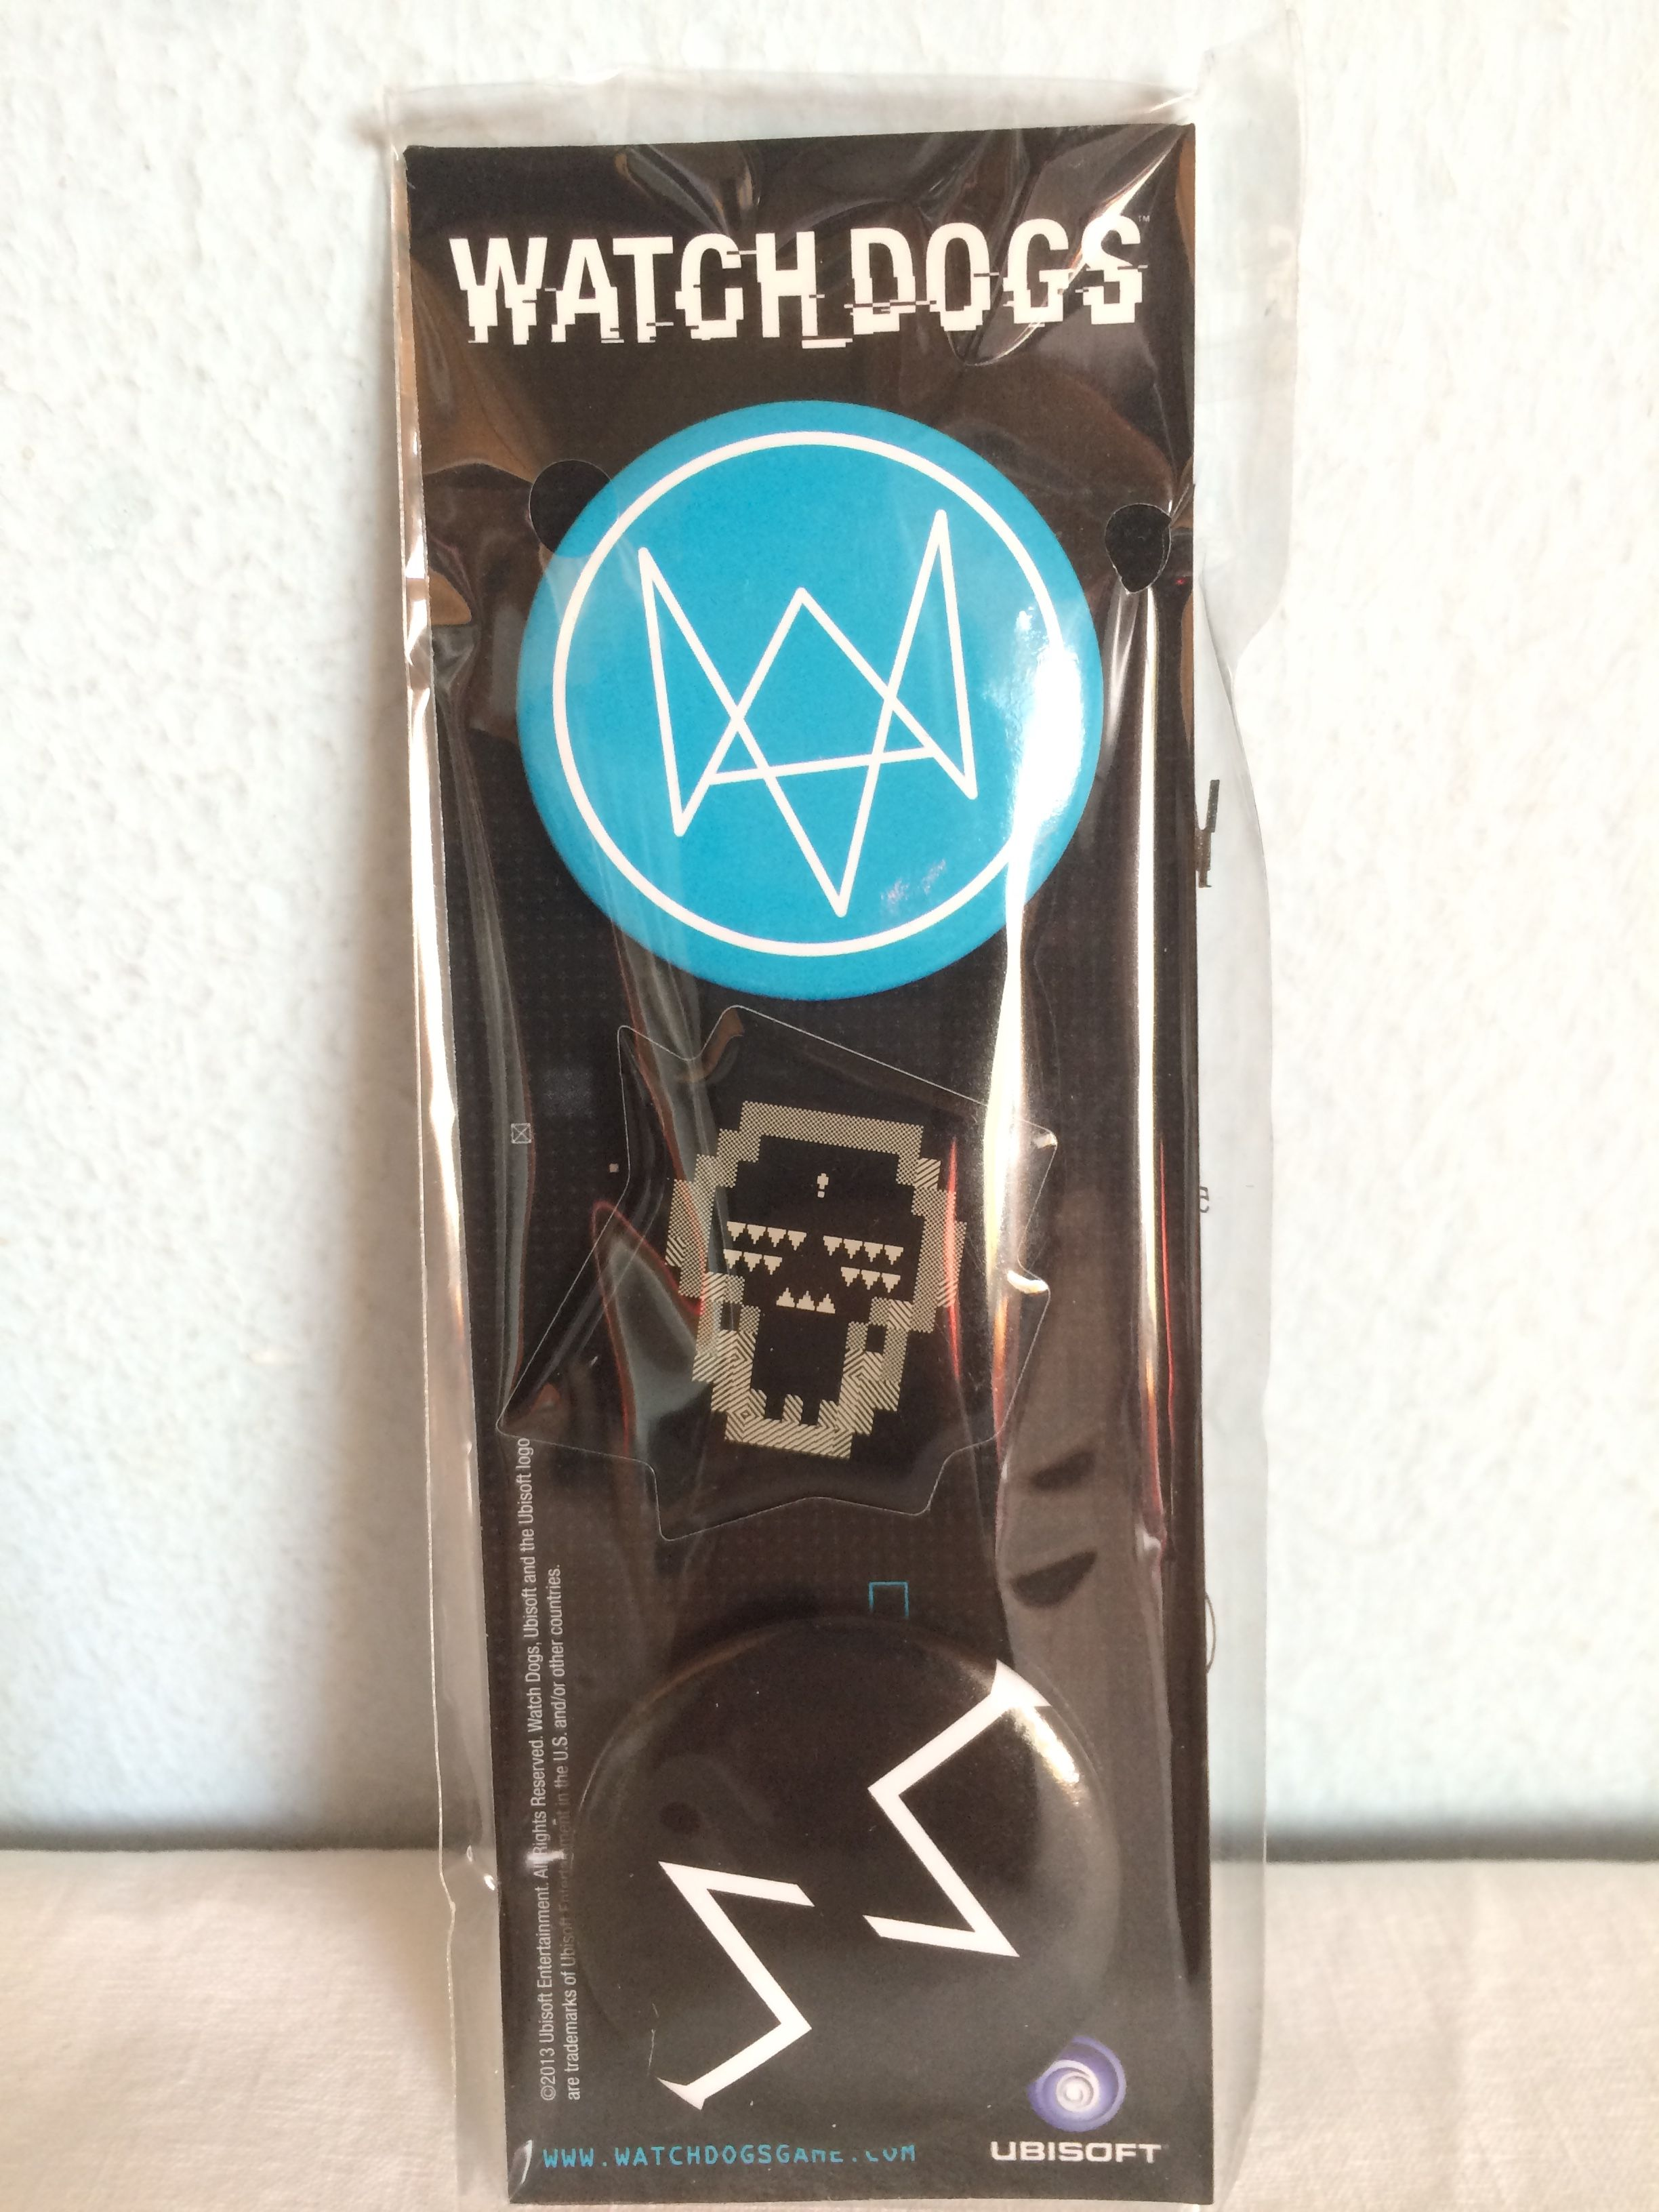 Watch Dogs DedSec Edition pins.